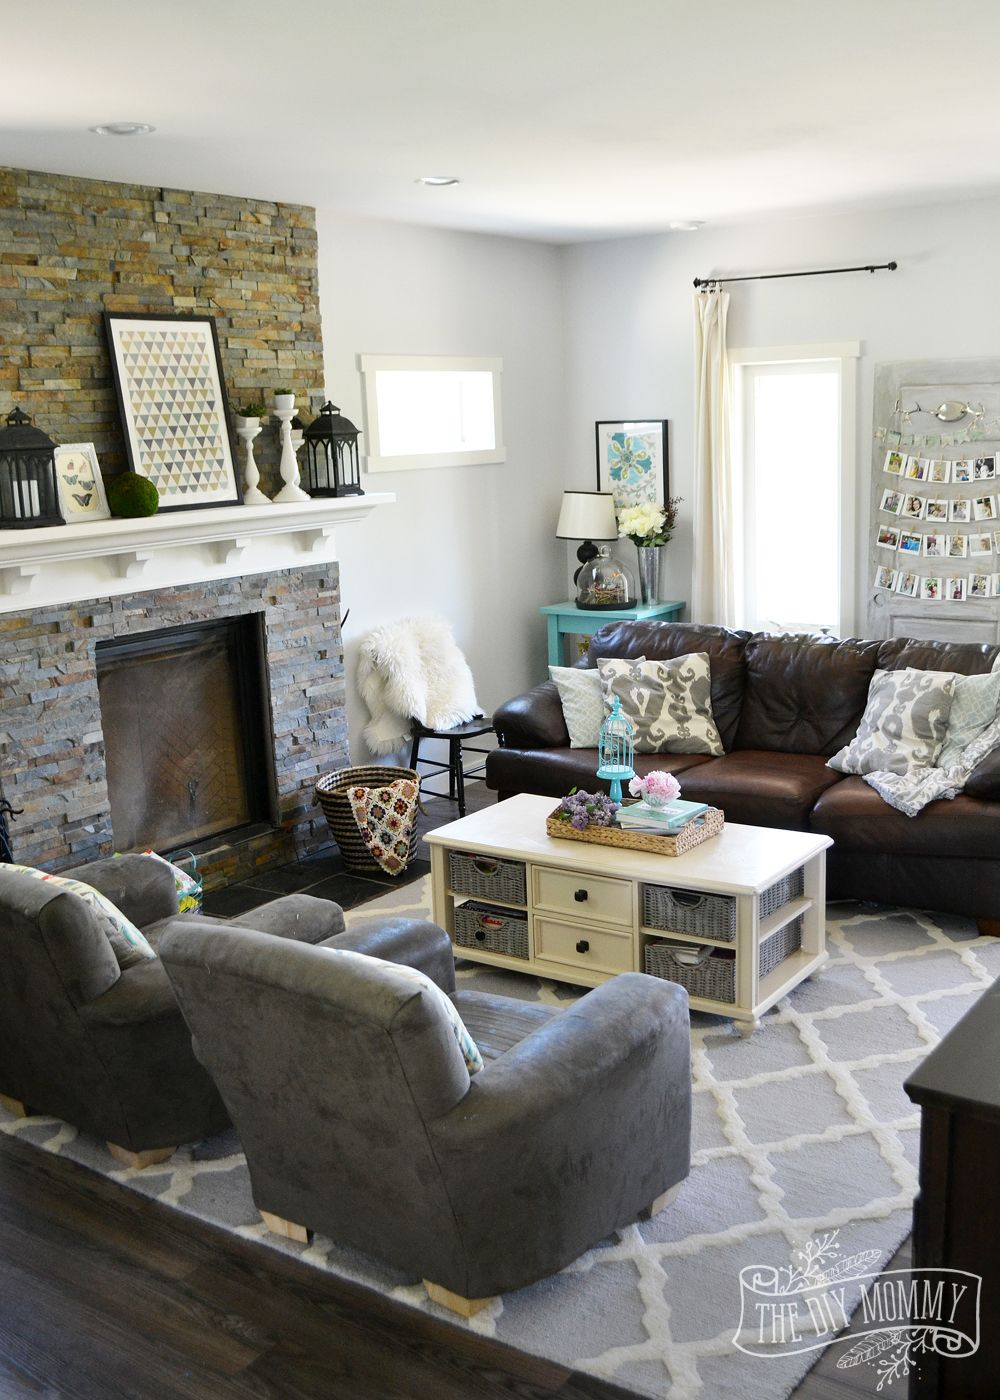 Our Diy House 2015 Home Tour The Diy Mommy Brown Living Room Decor Brown Living Room Living Room Turquoise #teal #brown #living #room